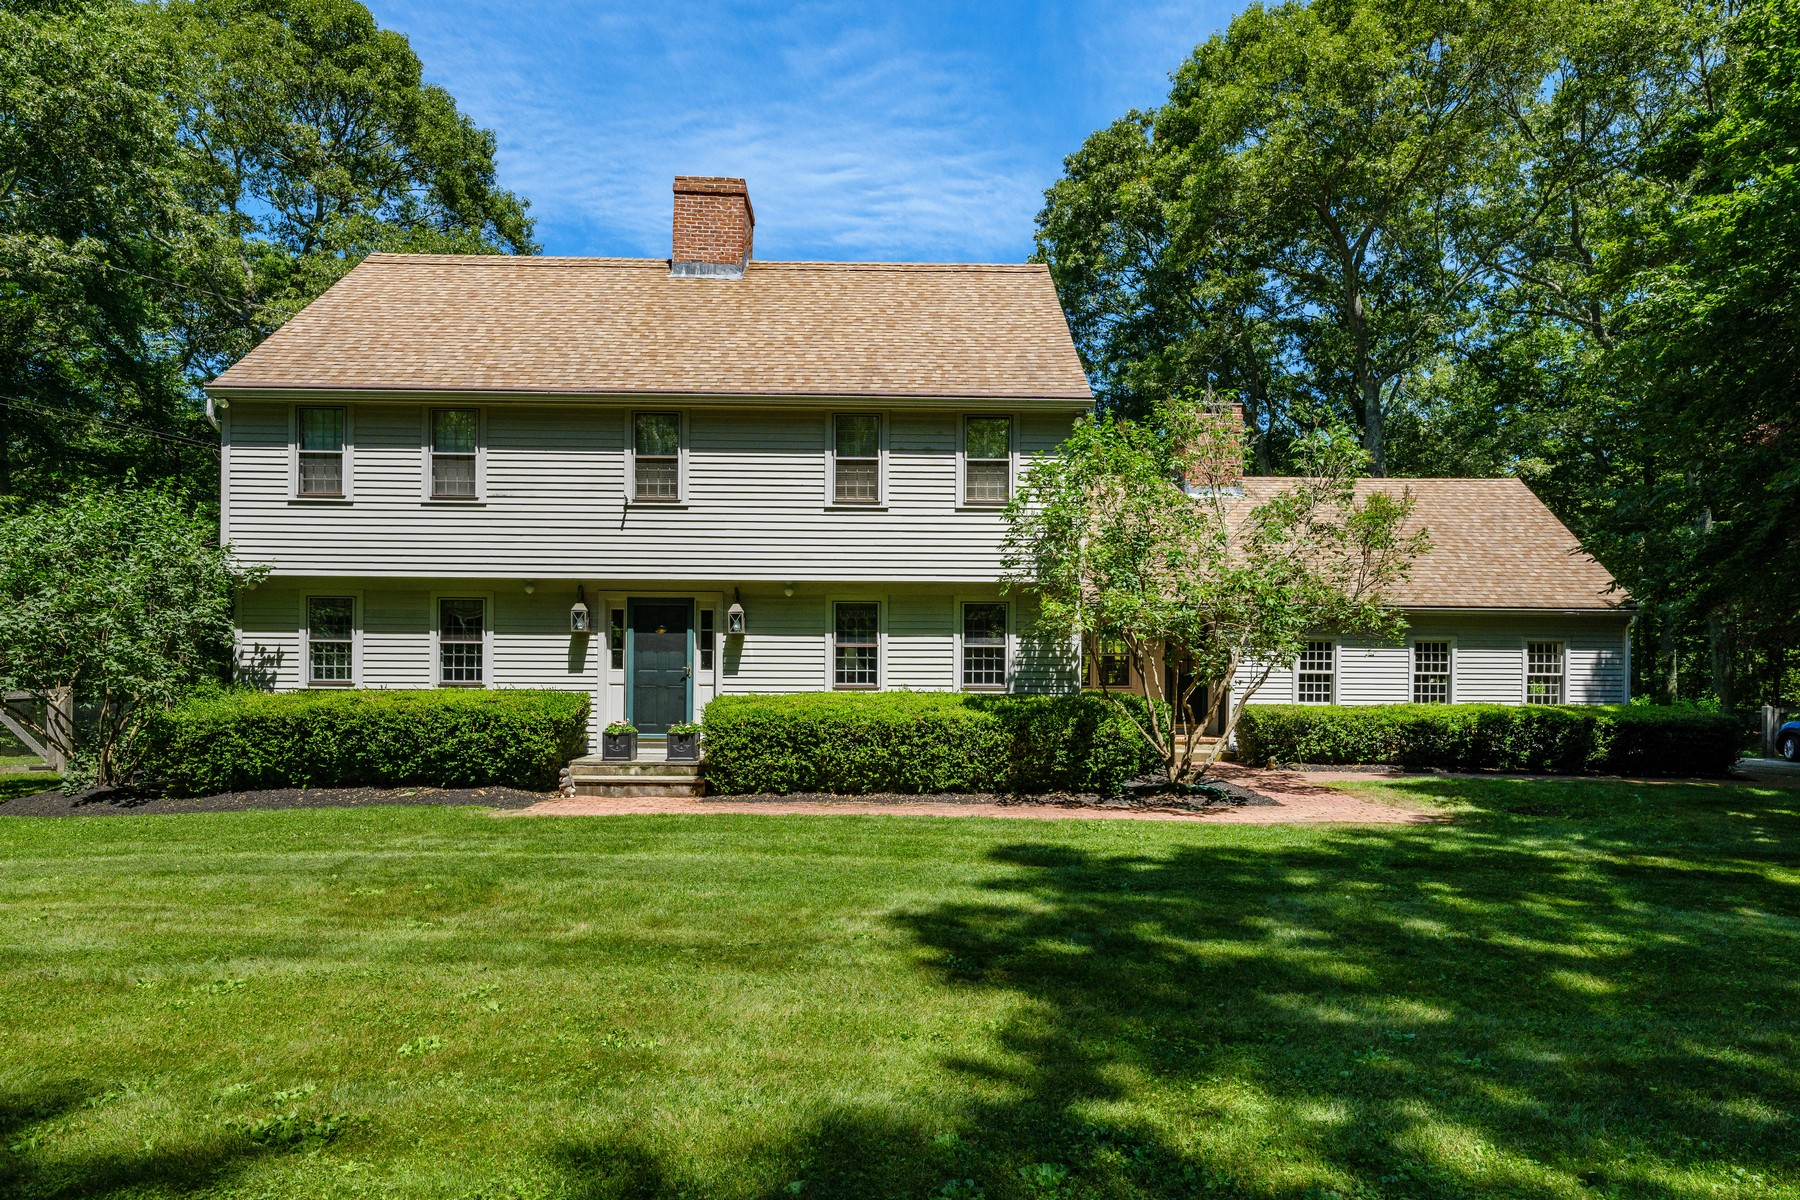 Single Family Homes for Sale at Desired District of Otter Cove 25 Otter Cove Dr Old Saybrook, Connecticut 06475 United States